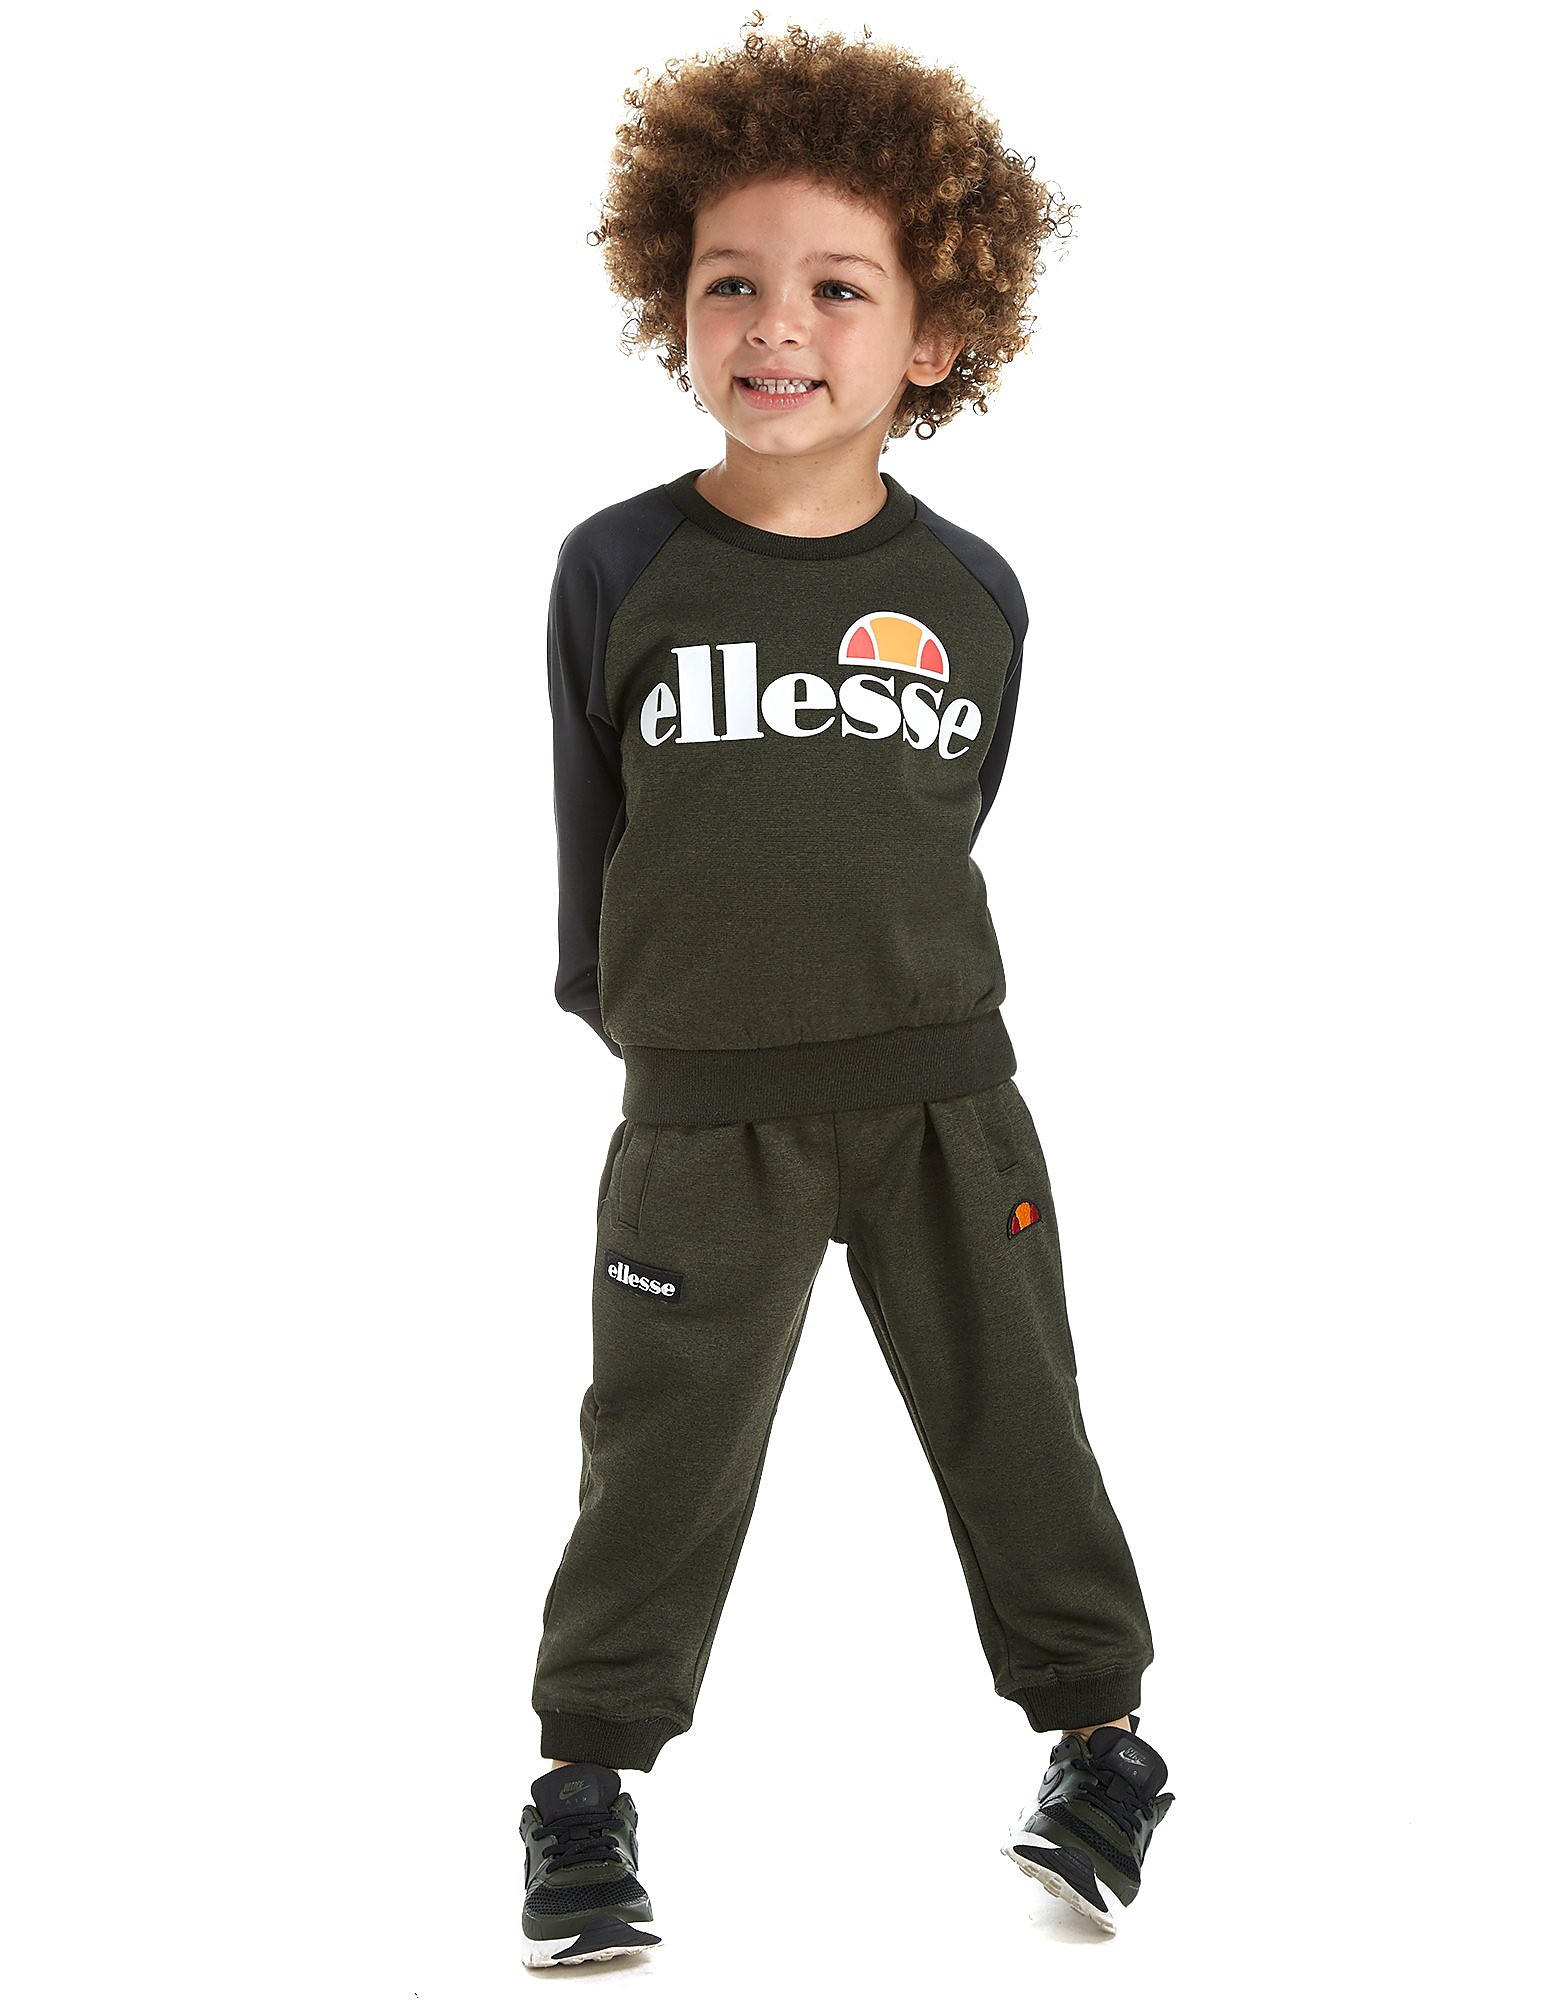 Ellesse Bervo Crew Suit Infants